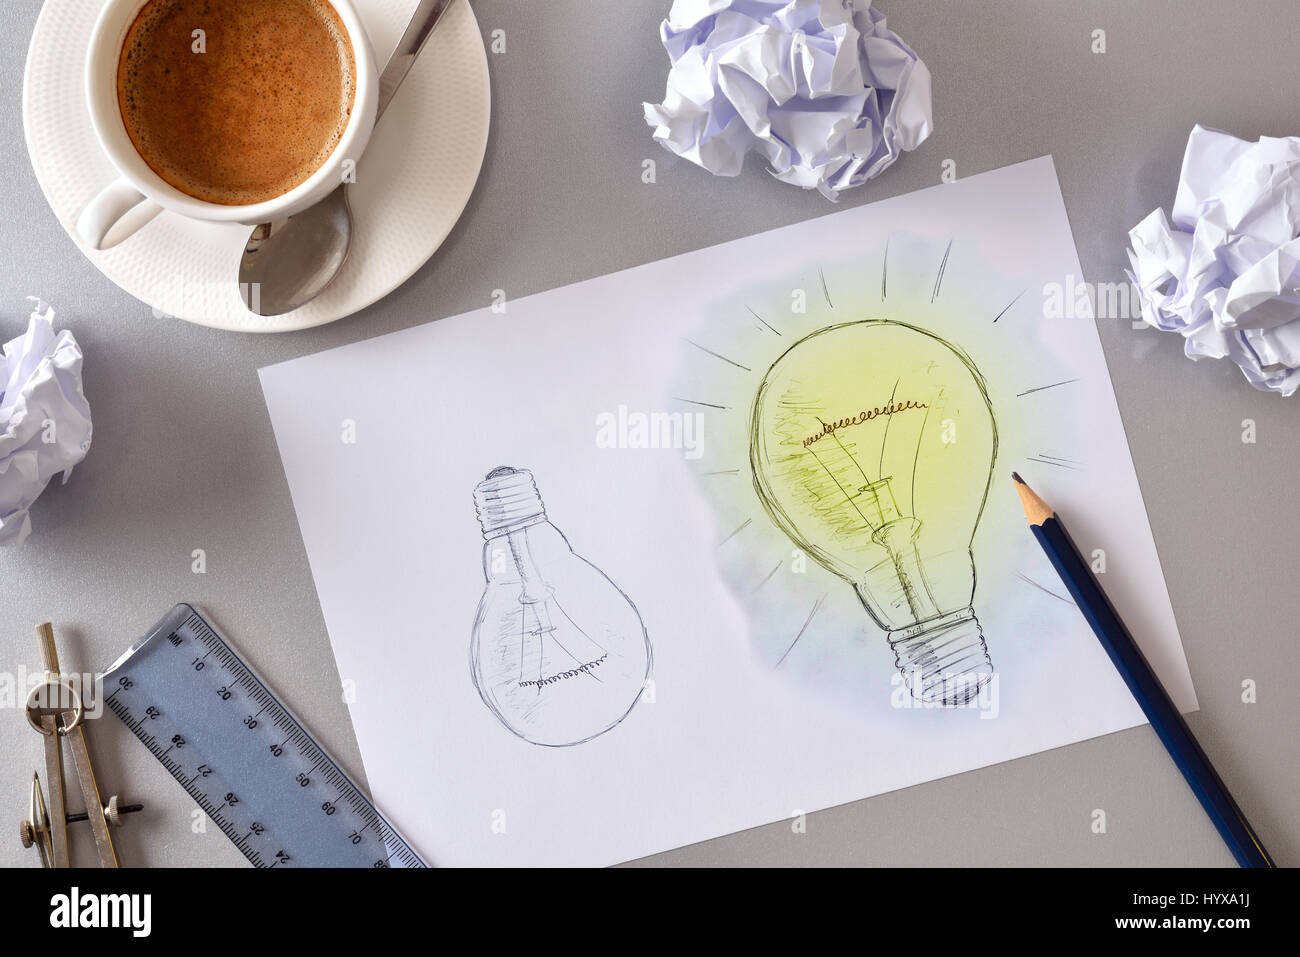 Concept of business idea with representation of the development of a plan with two bulbs drawn on a sheet. With - Stock Image